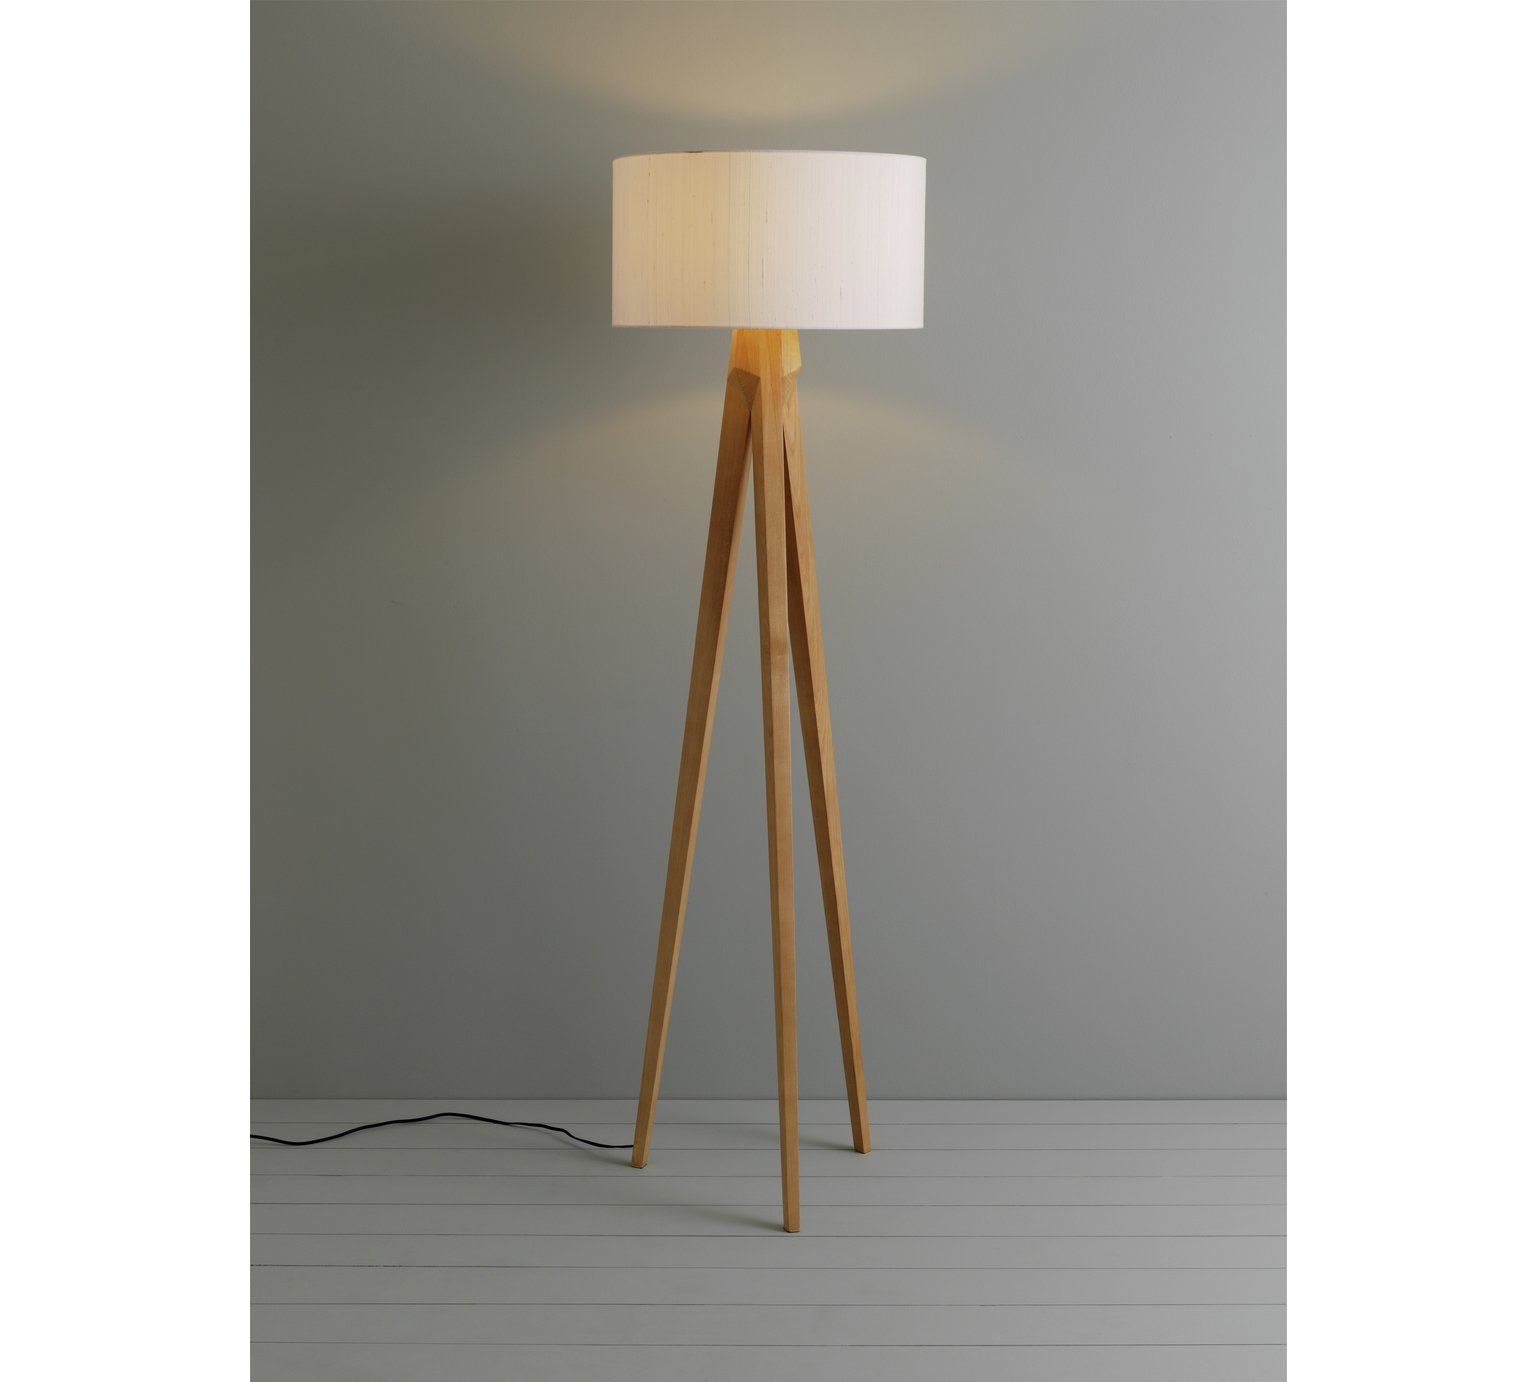 Buy Habitat Tripod Wooden Floor Lamp Ash At Argos Co Uk Visit Argos Co Uk To Shop Online For Floor La Wooden Tripod Floor Lamp Wooden Floor Lamps Floor Lamp